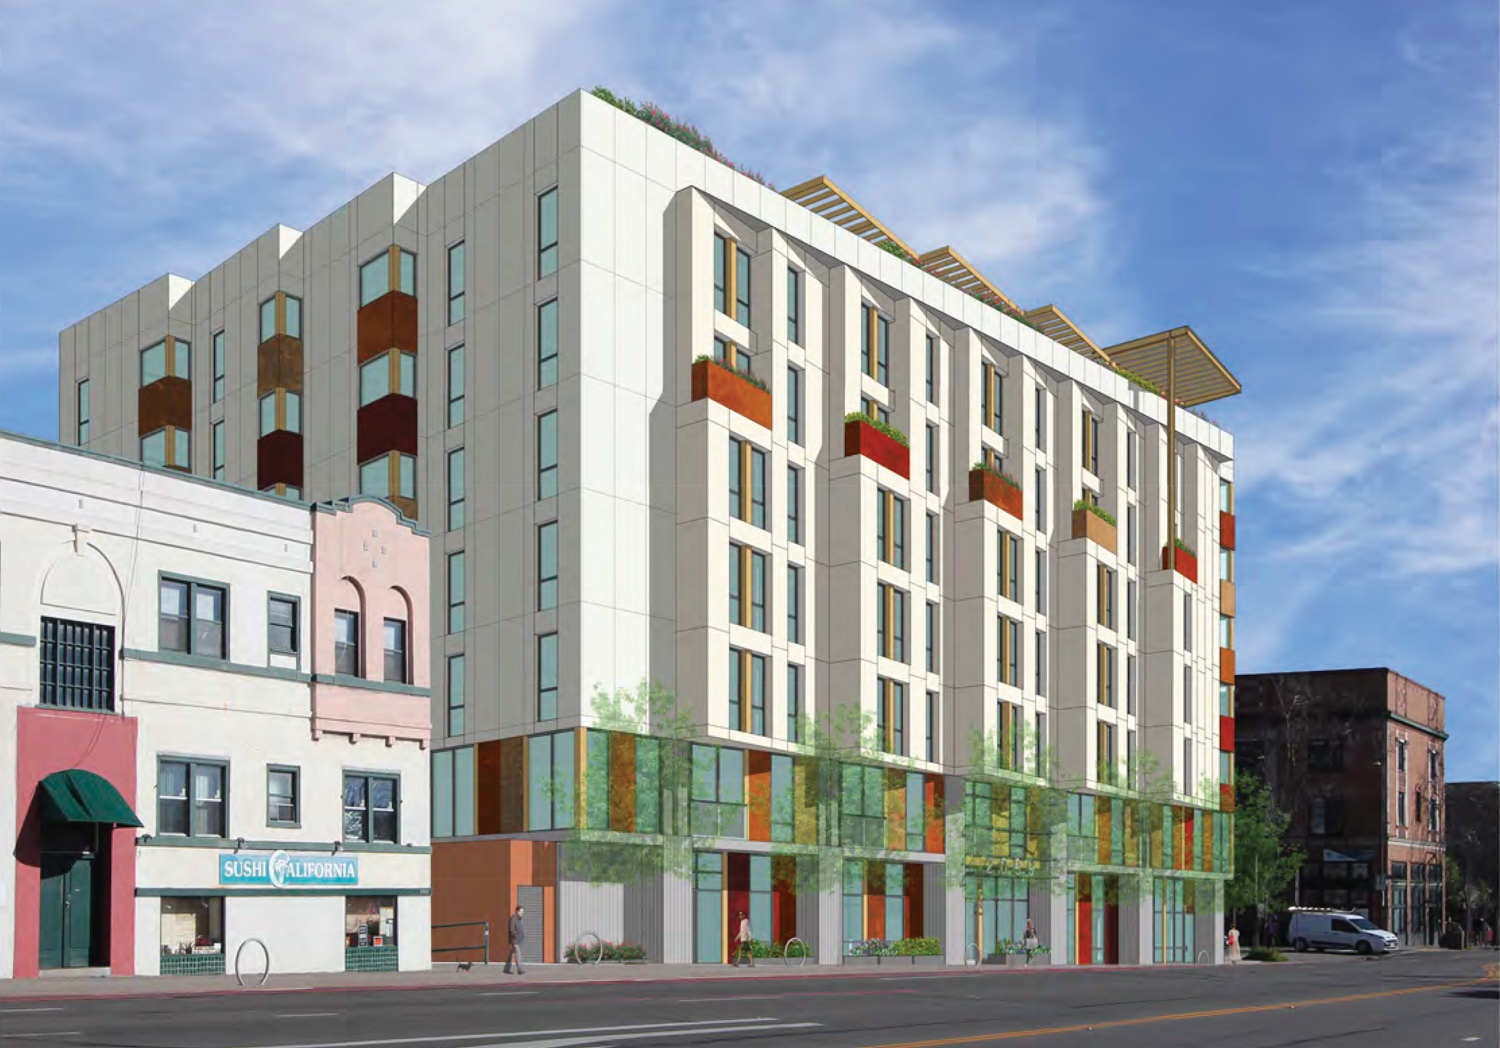 2099 Martin Luther King Jr Way side-view, rendering by Kava Massih Architects